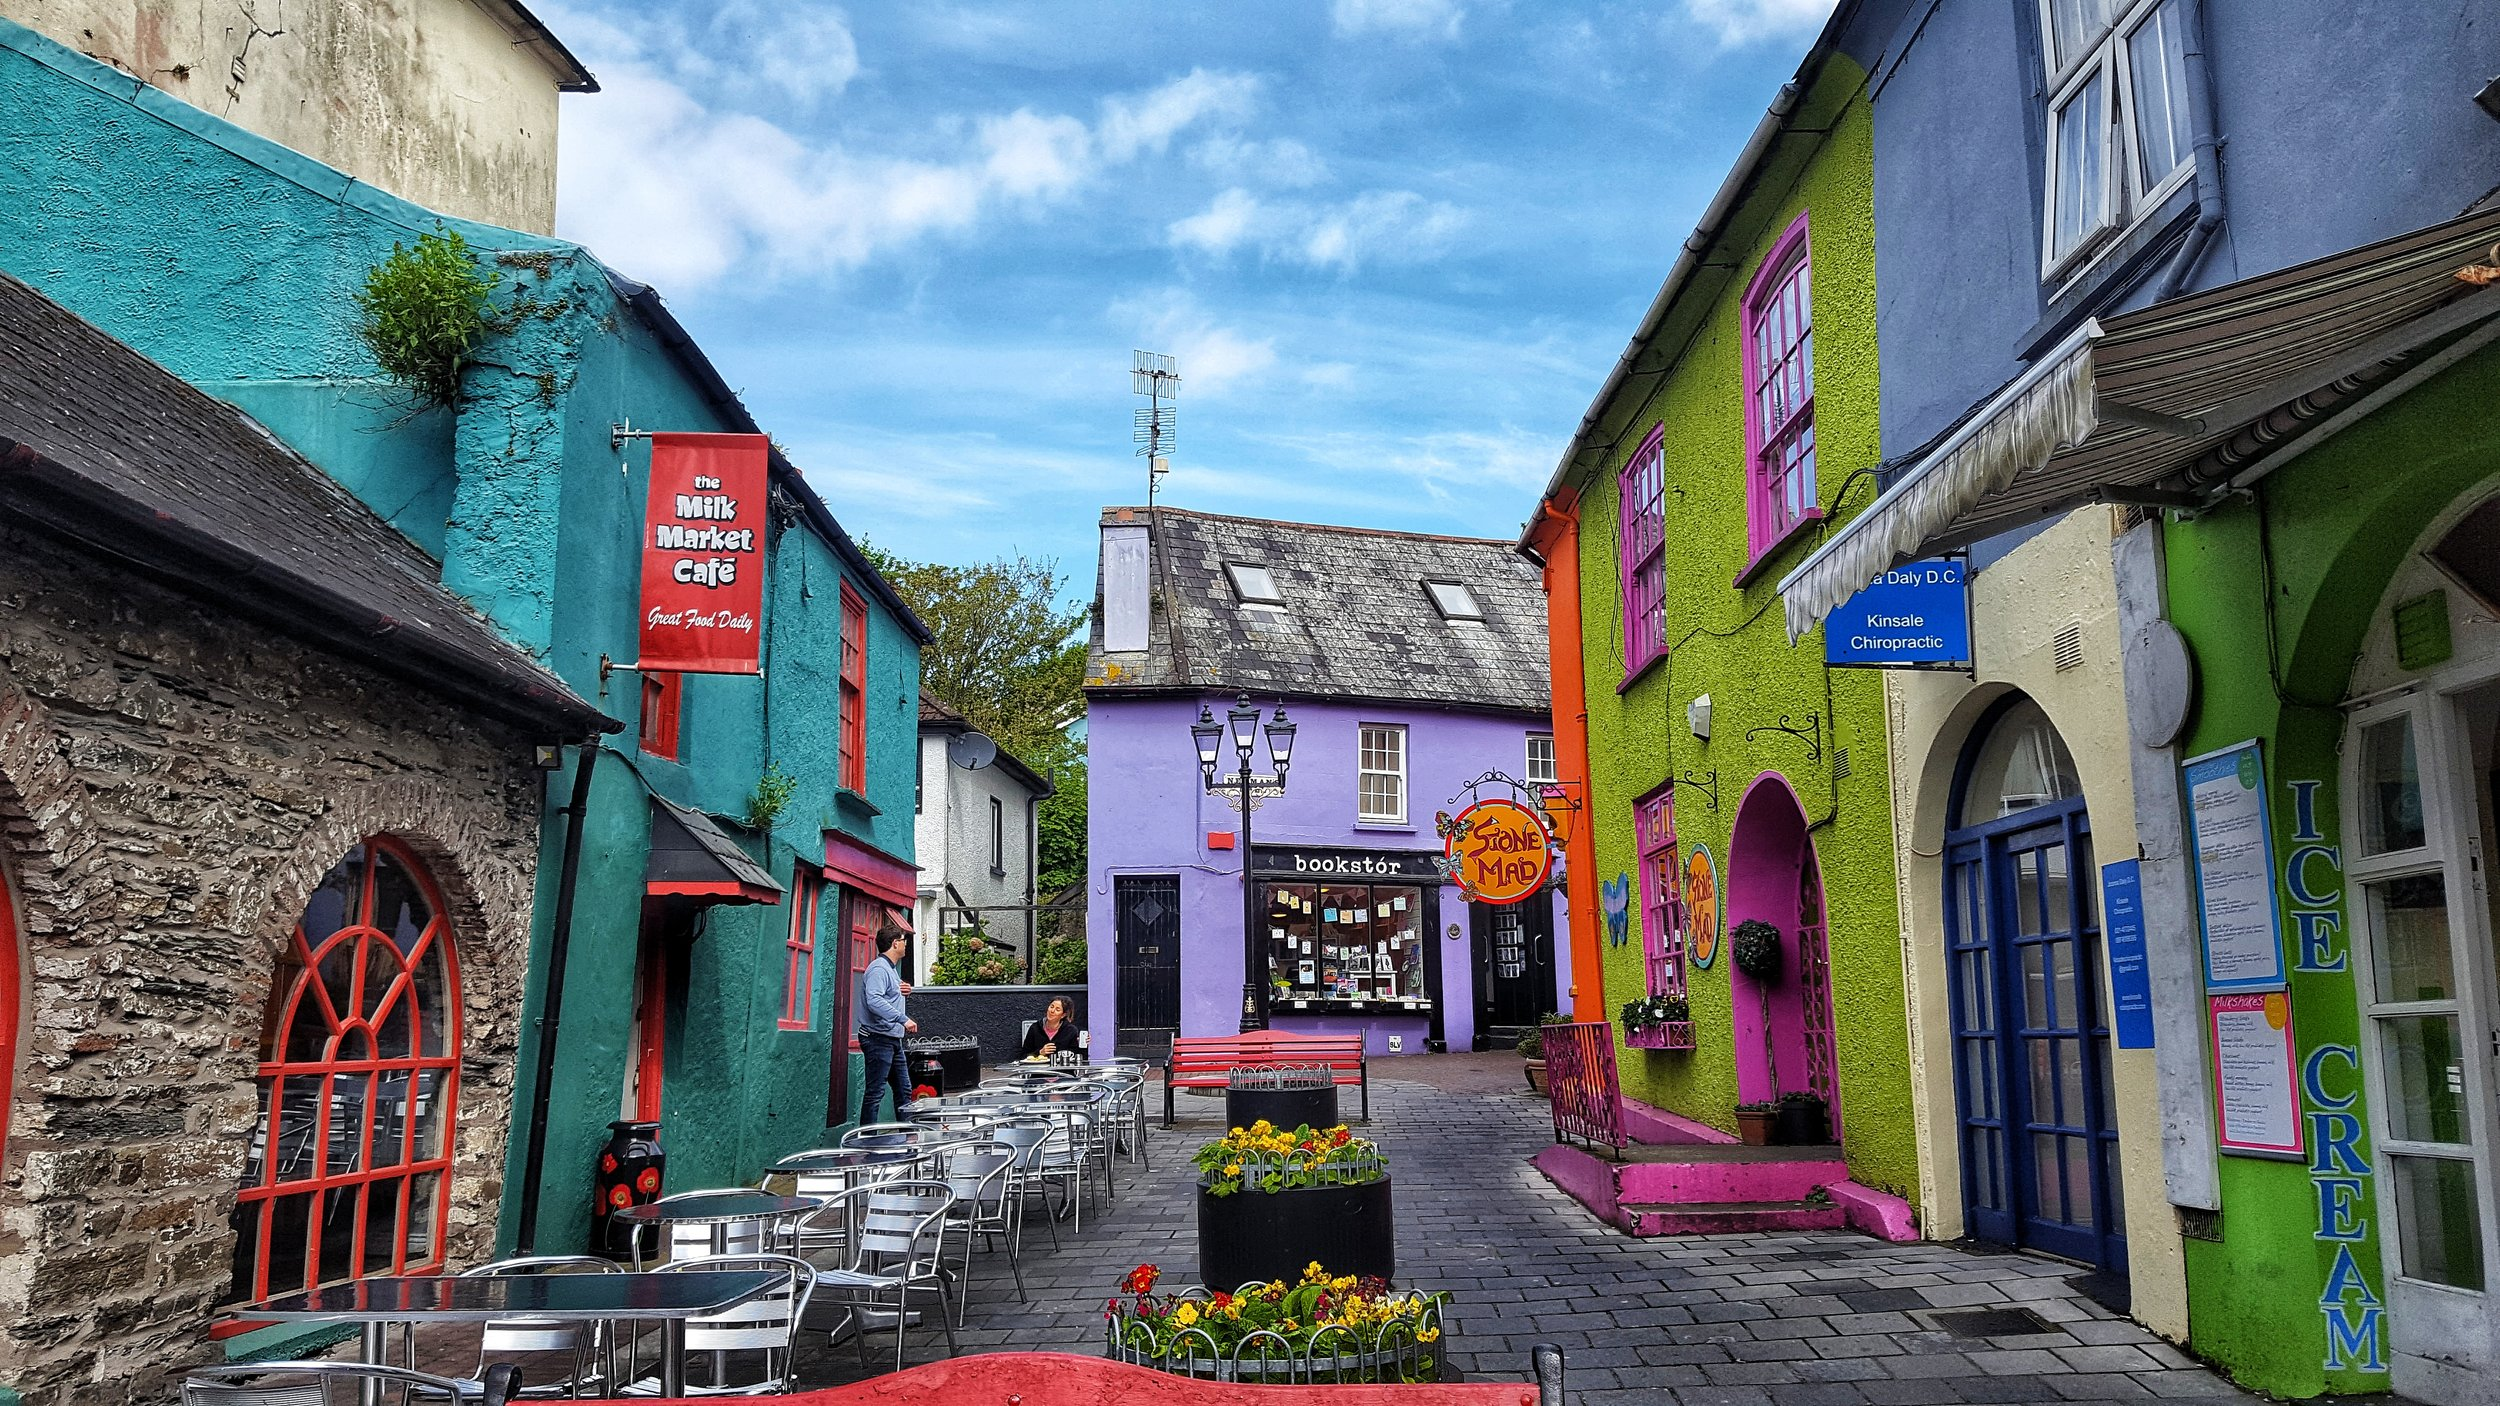 A snippet of the colorful downtown of Kinsale.